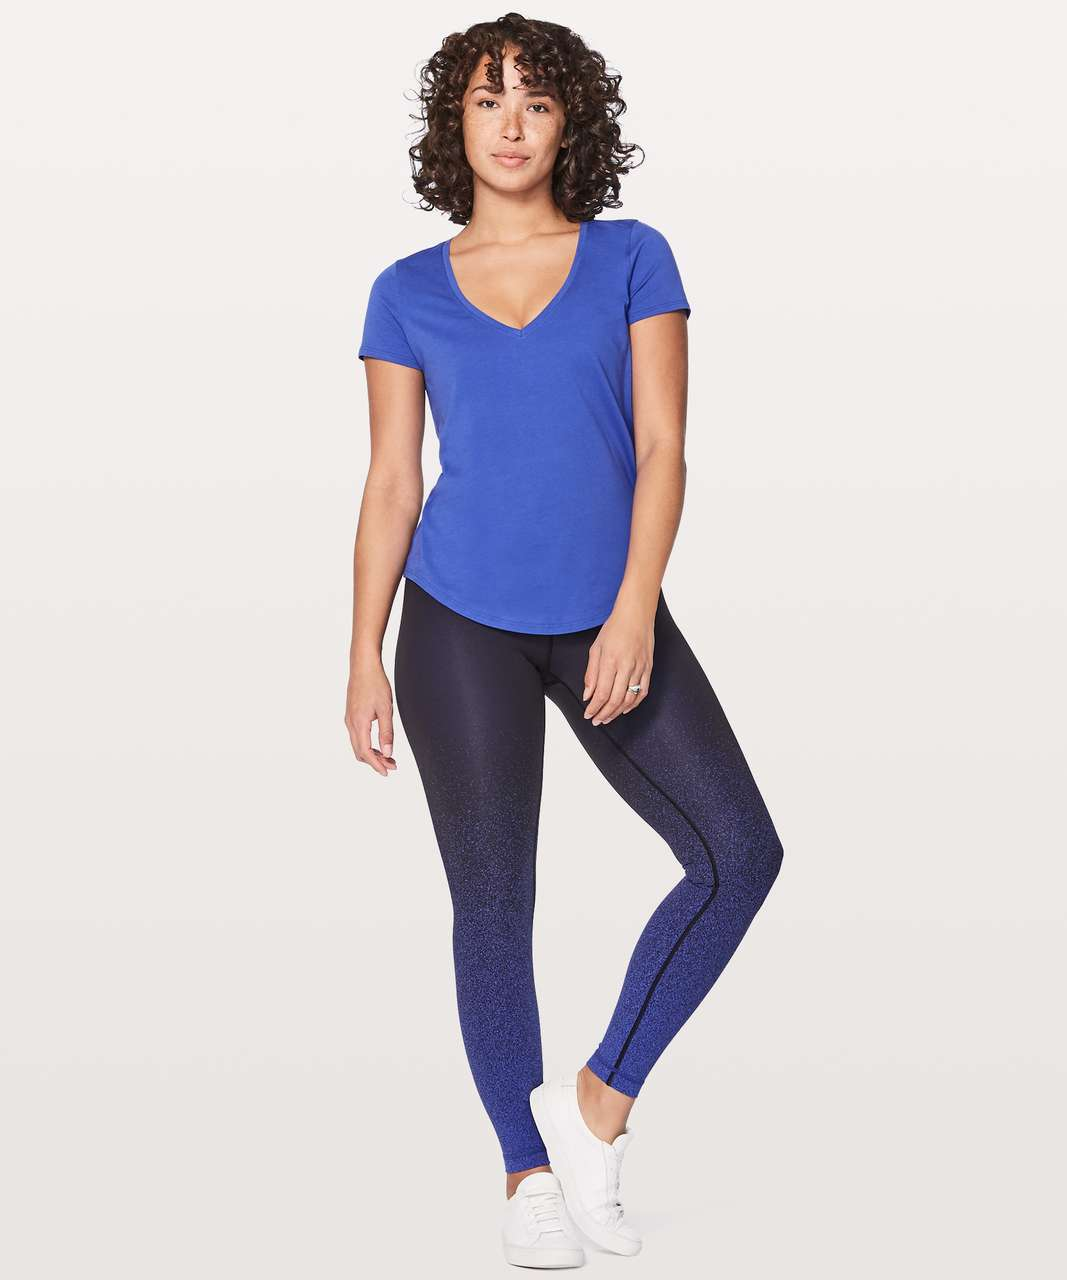 Lululemon Love Tee V - Blazer Blue